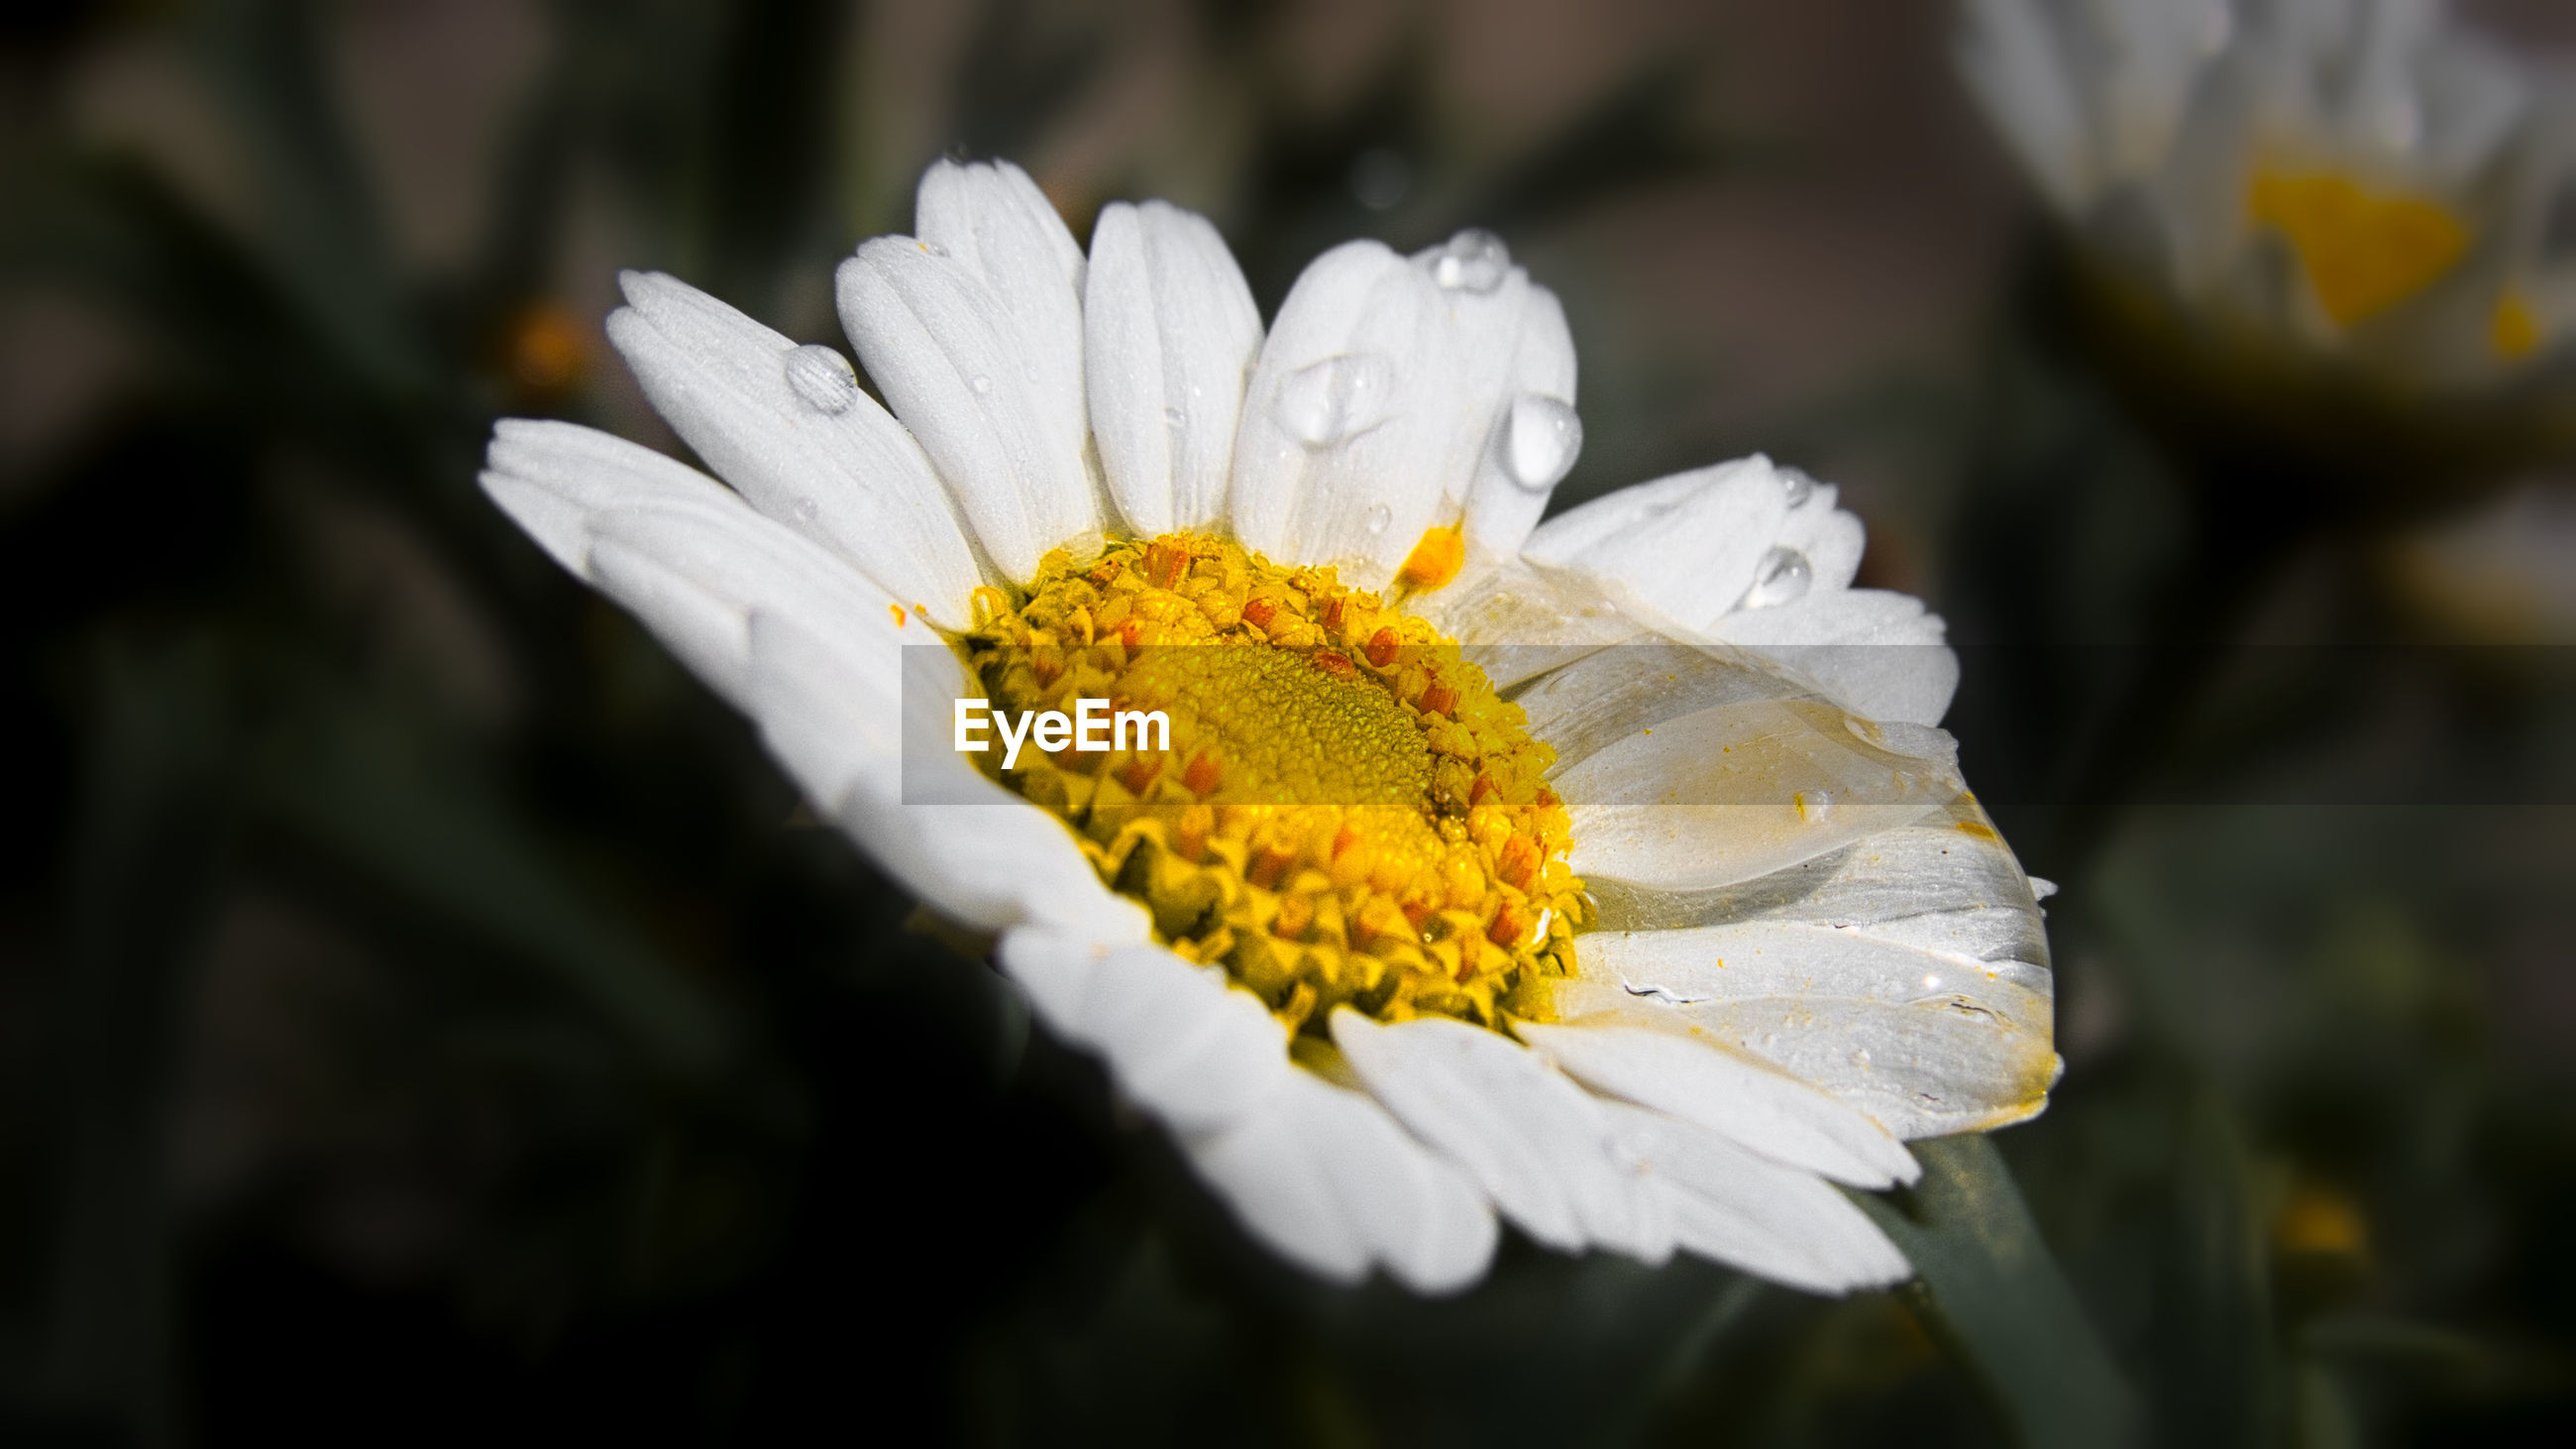 CLOSE-UP OF WHITE AND YELLOW FLOWER